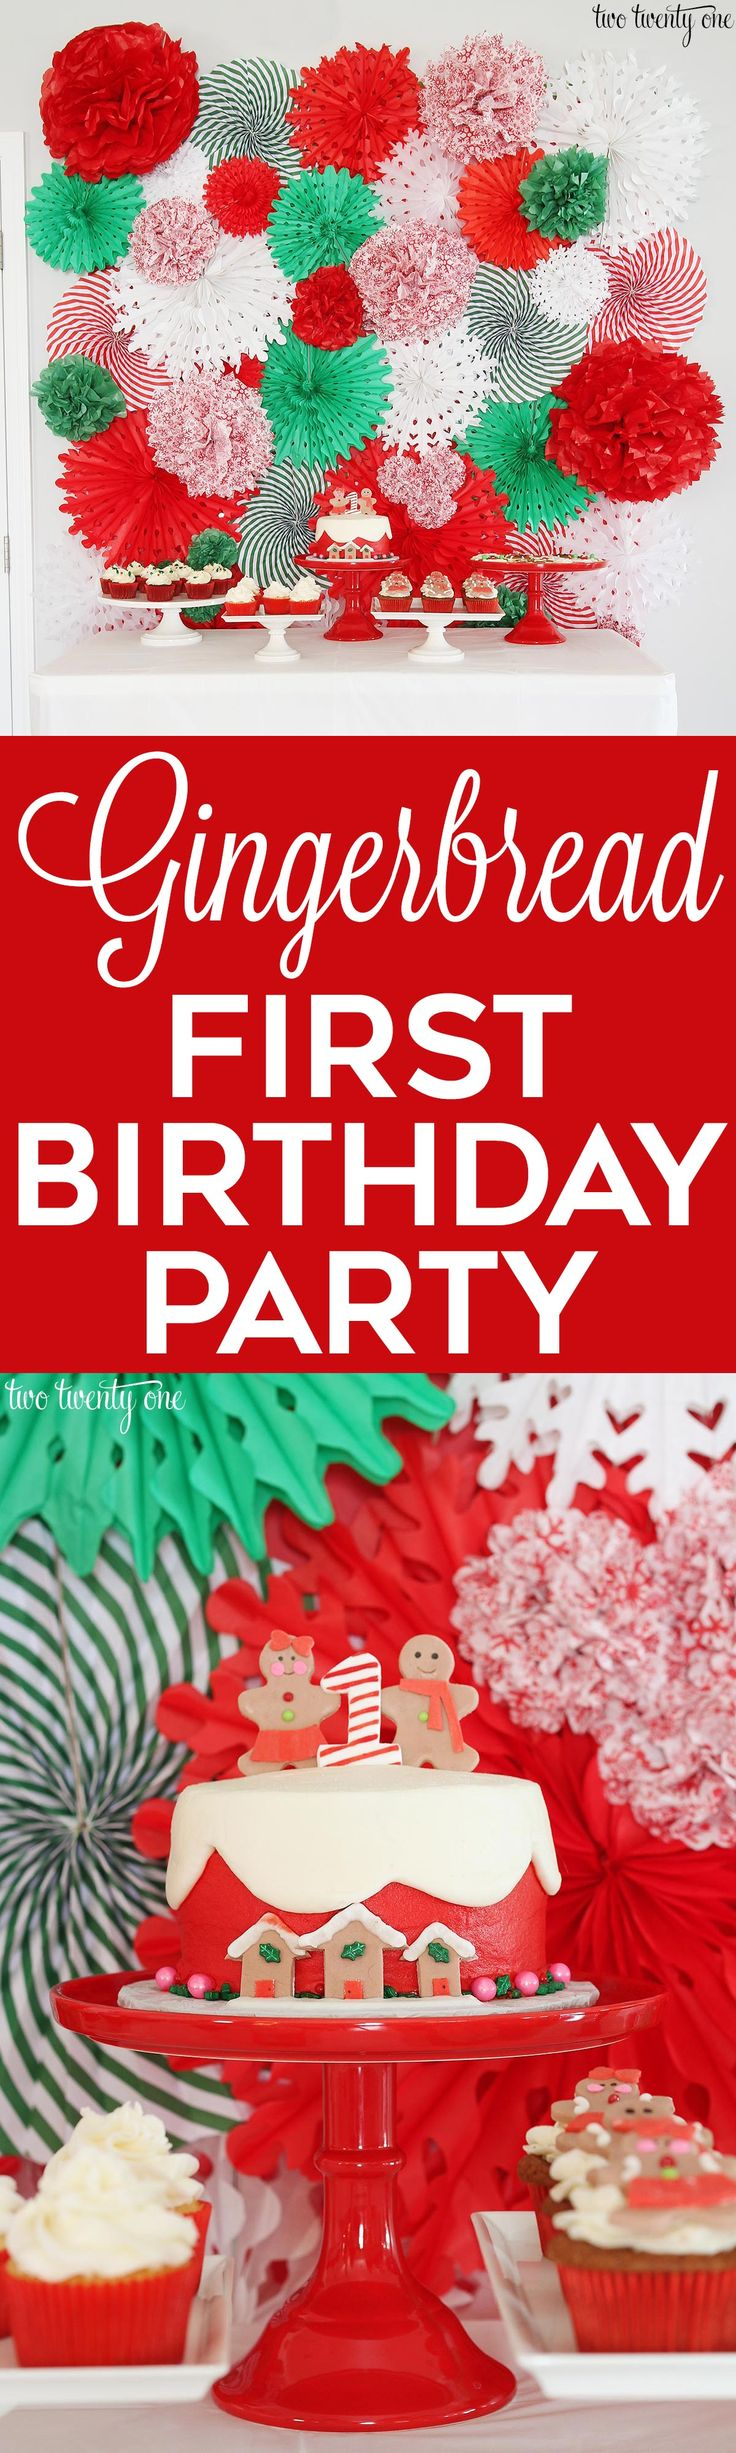 Christmas 1st Birthday Party Ideas Part - 22: Best 25+ December Birthday Parties Ideas On Pinterest | Christmas Birthday  Party, Christmas Birthday And Gingerbread Birthday Party